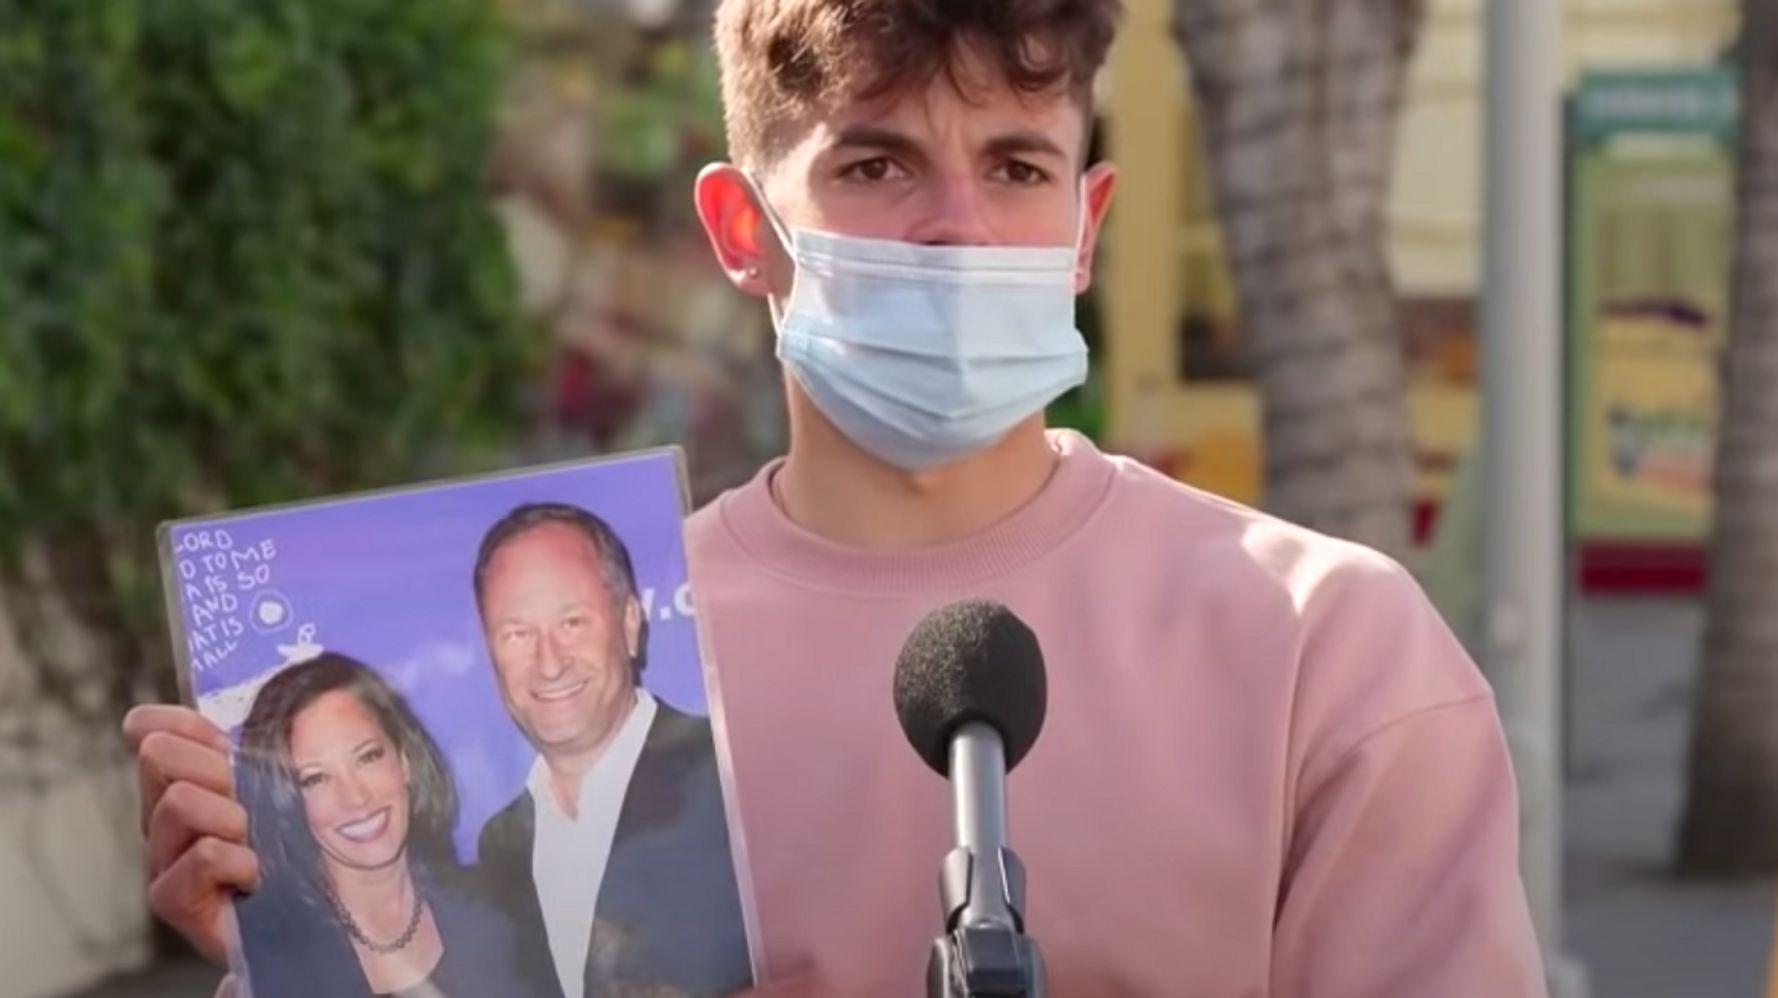 Jimmy Kimmel Asks People To ID Doug Emhoff And It Does Not Go Well